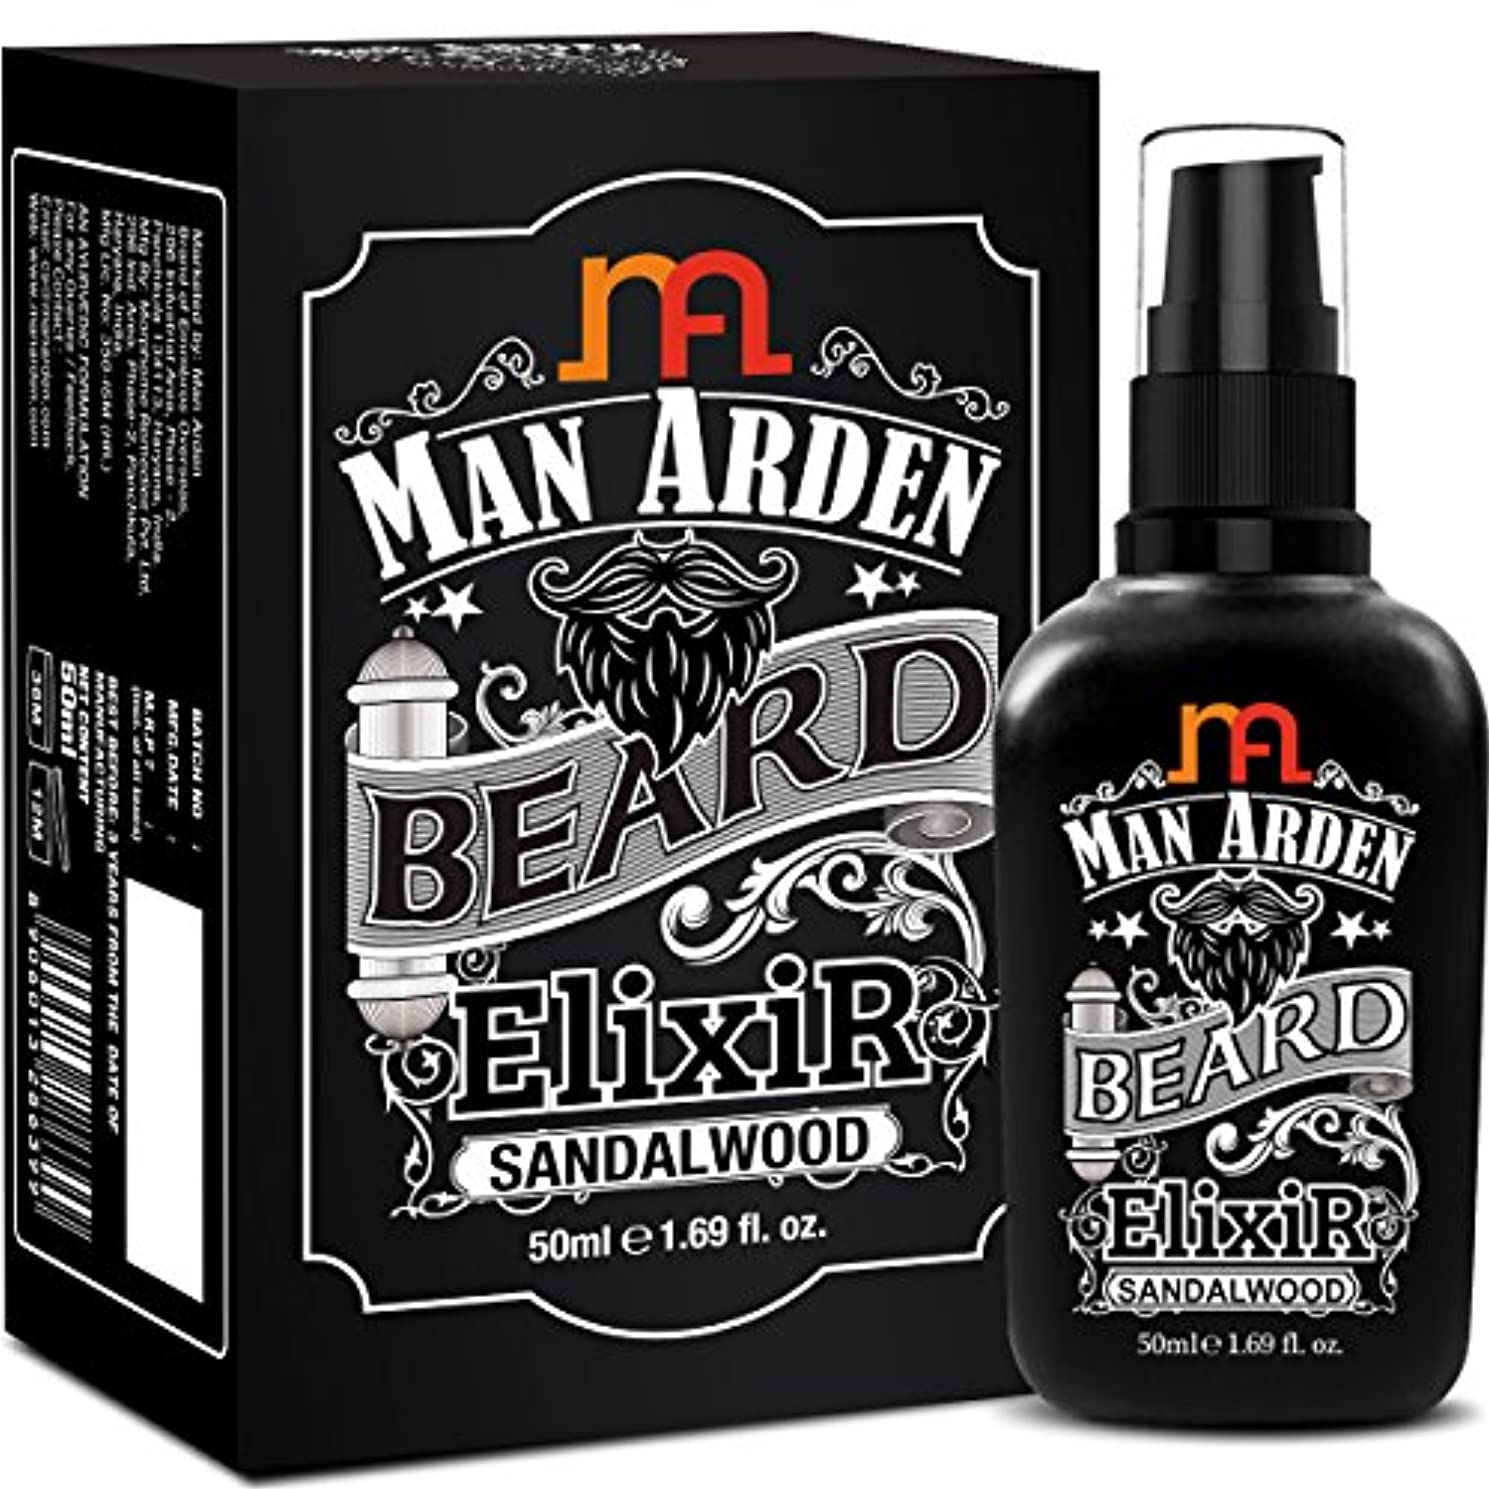 フリルカレンダーレベルMan Arden Beard Elixir Oil 50ml (Sandalwood) - 7 Oils Blend For Beard Repair, Growth & Nourishment8906013286399